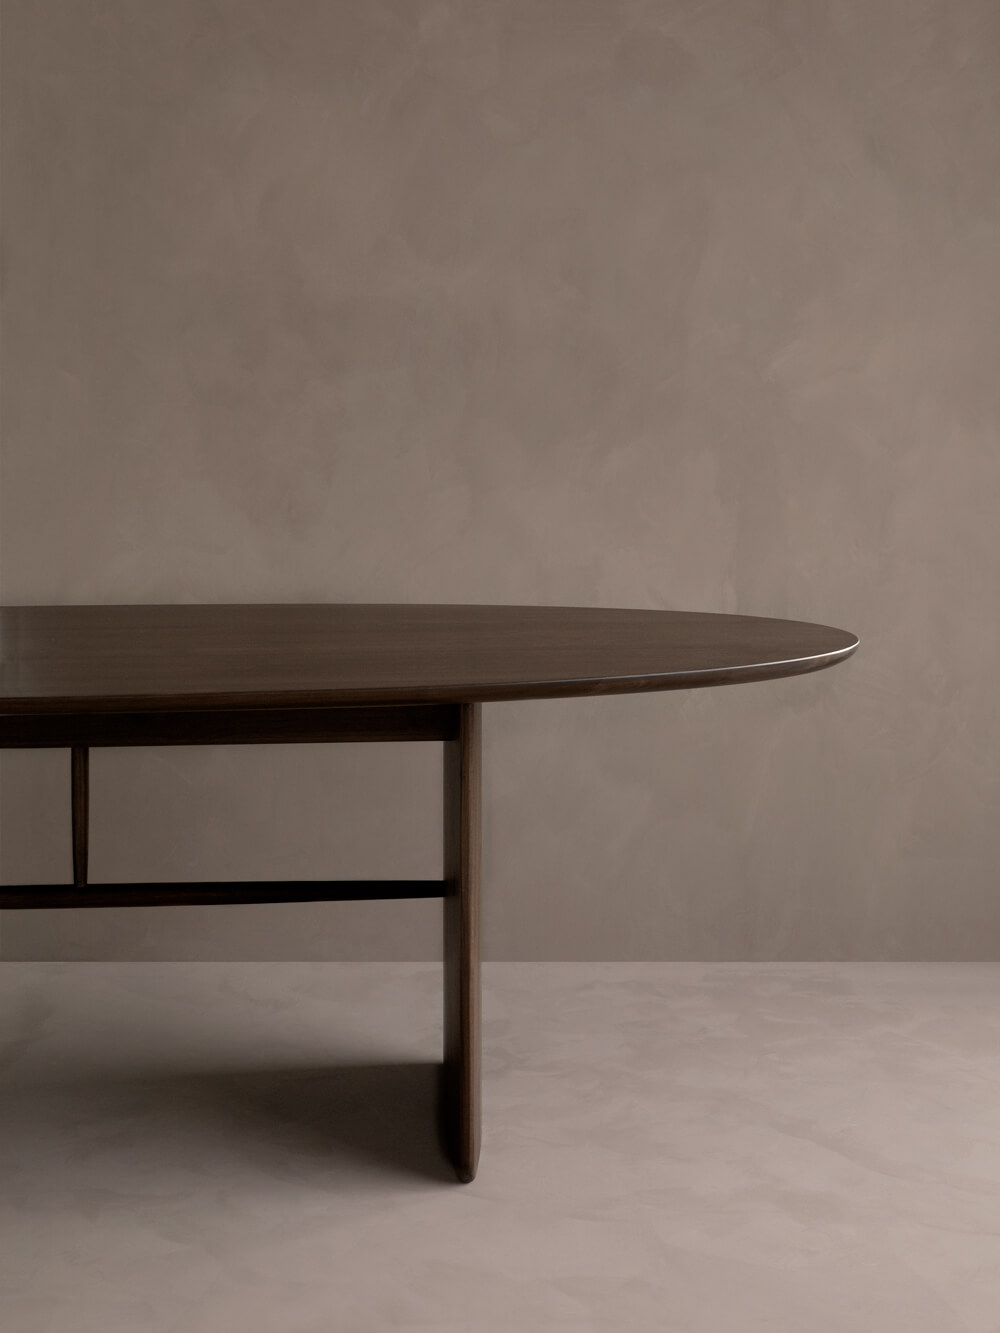 The Pennon table features a substantial table top contrasted with elegant spindle detailing.